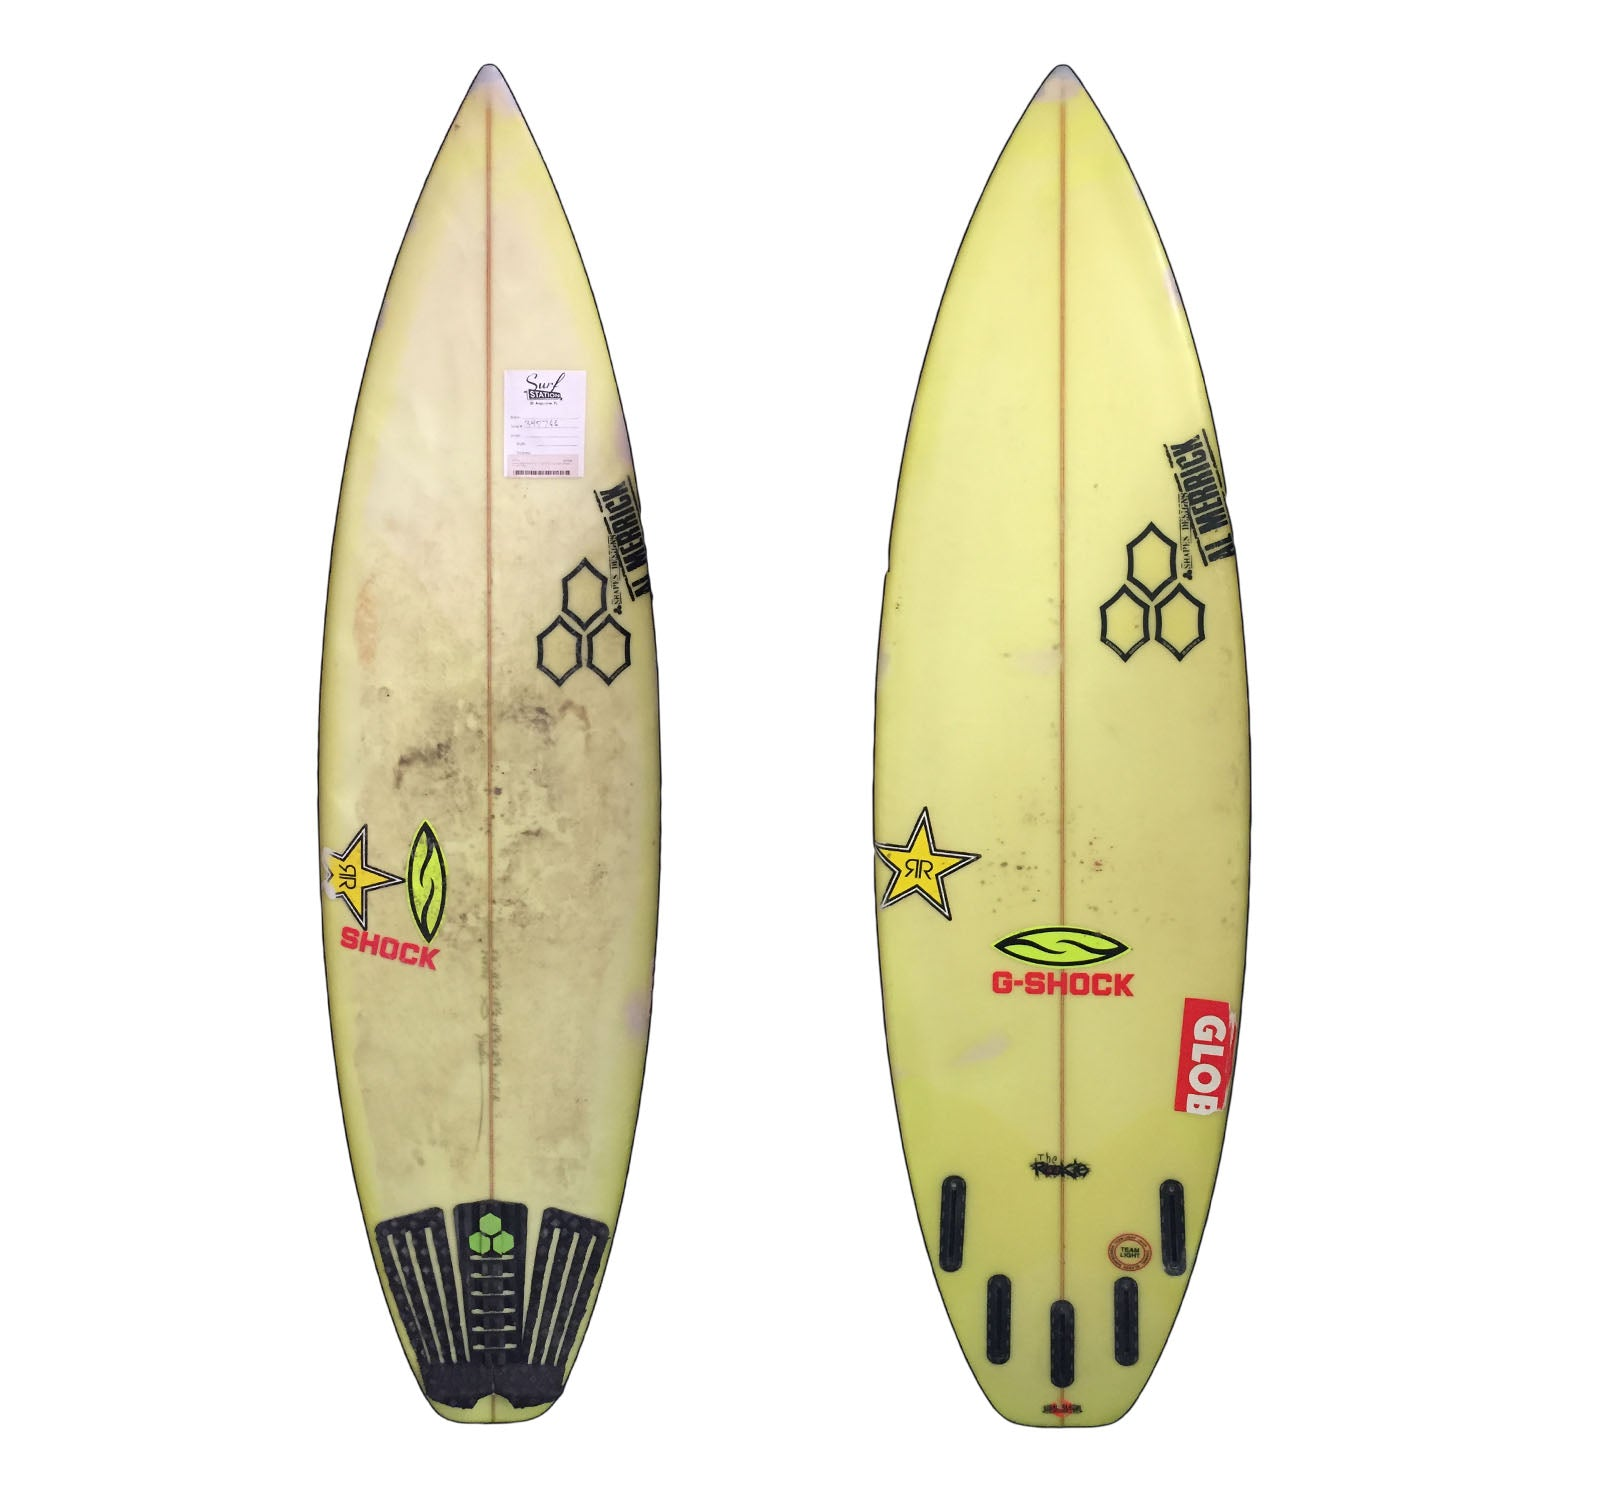 Channel Islands Rookie 5'11 Used Surfboard